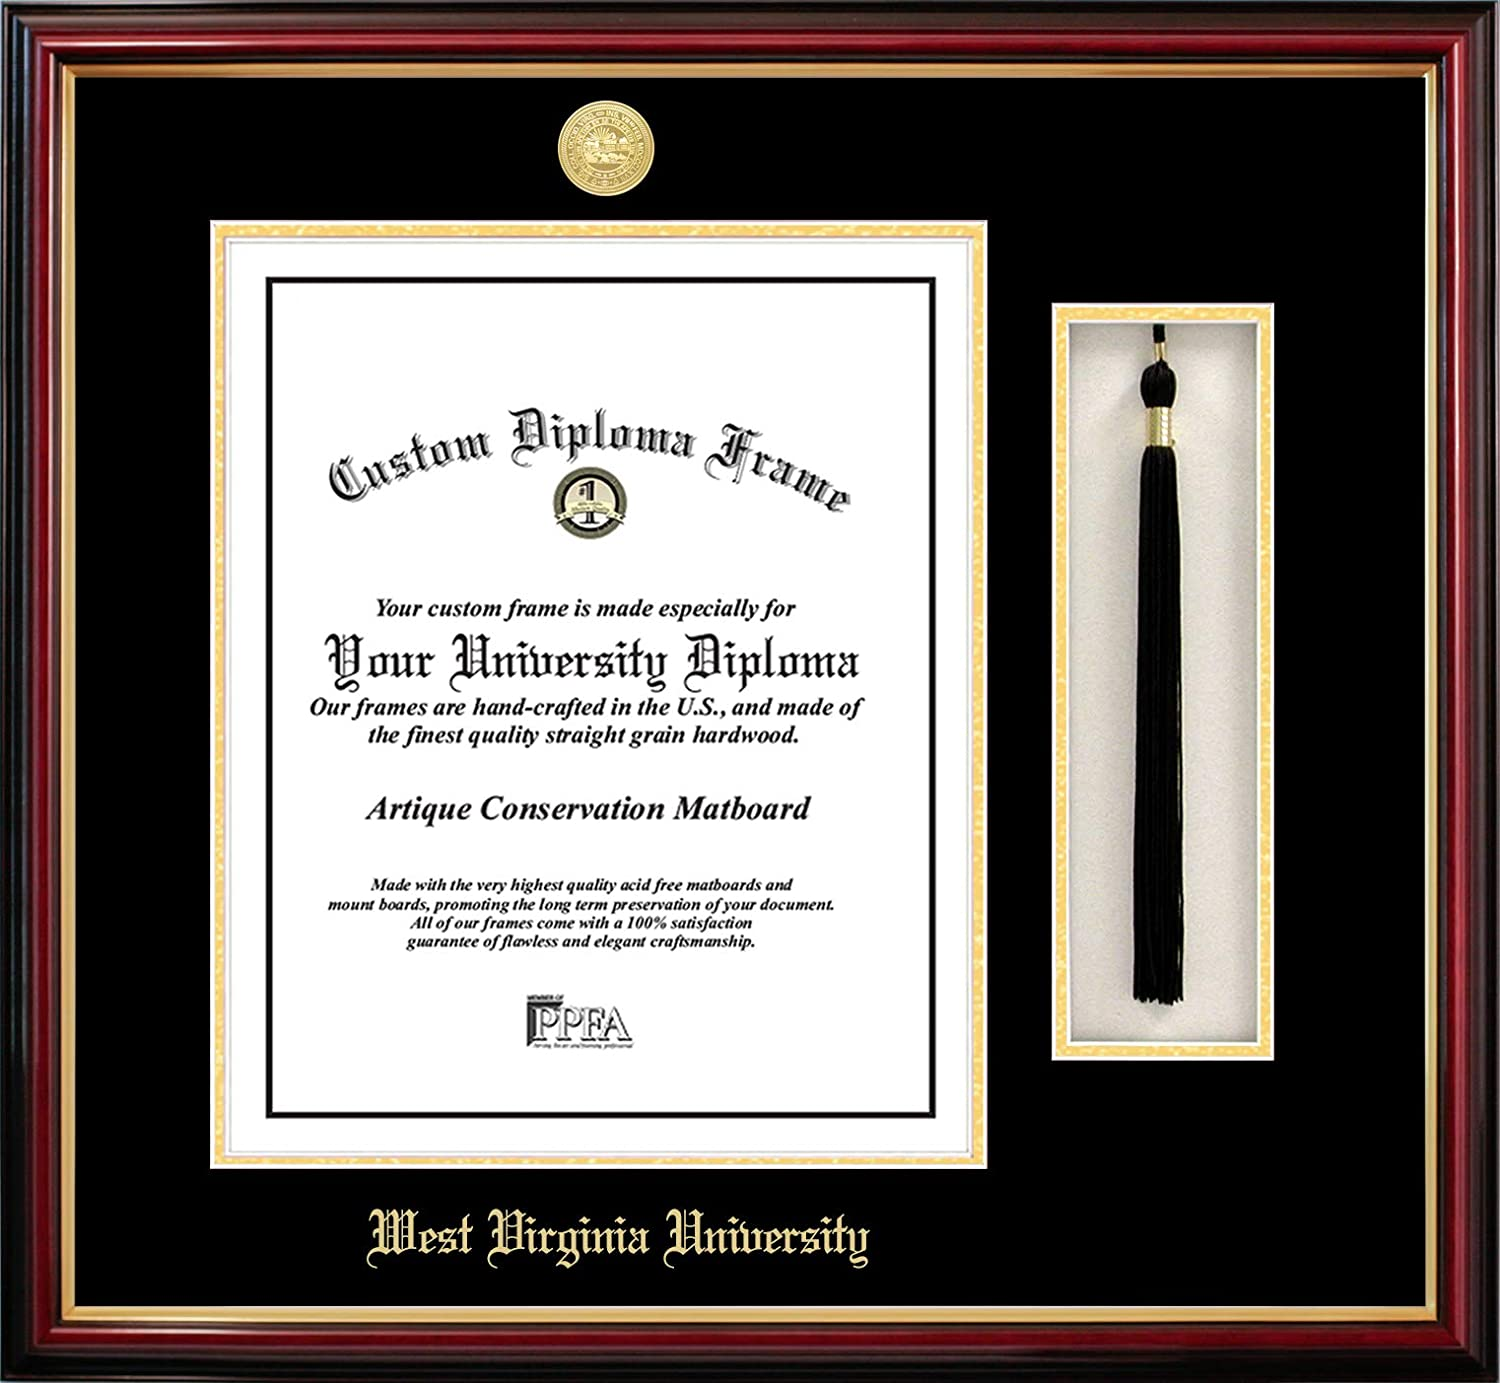 Campus Images NCAA unisex Tassel Super-cheap Sale SALE% OFF Frame Diploma Box and